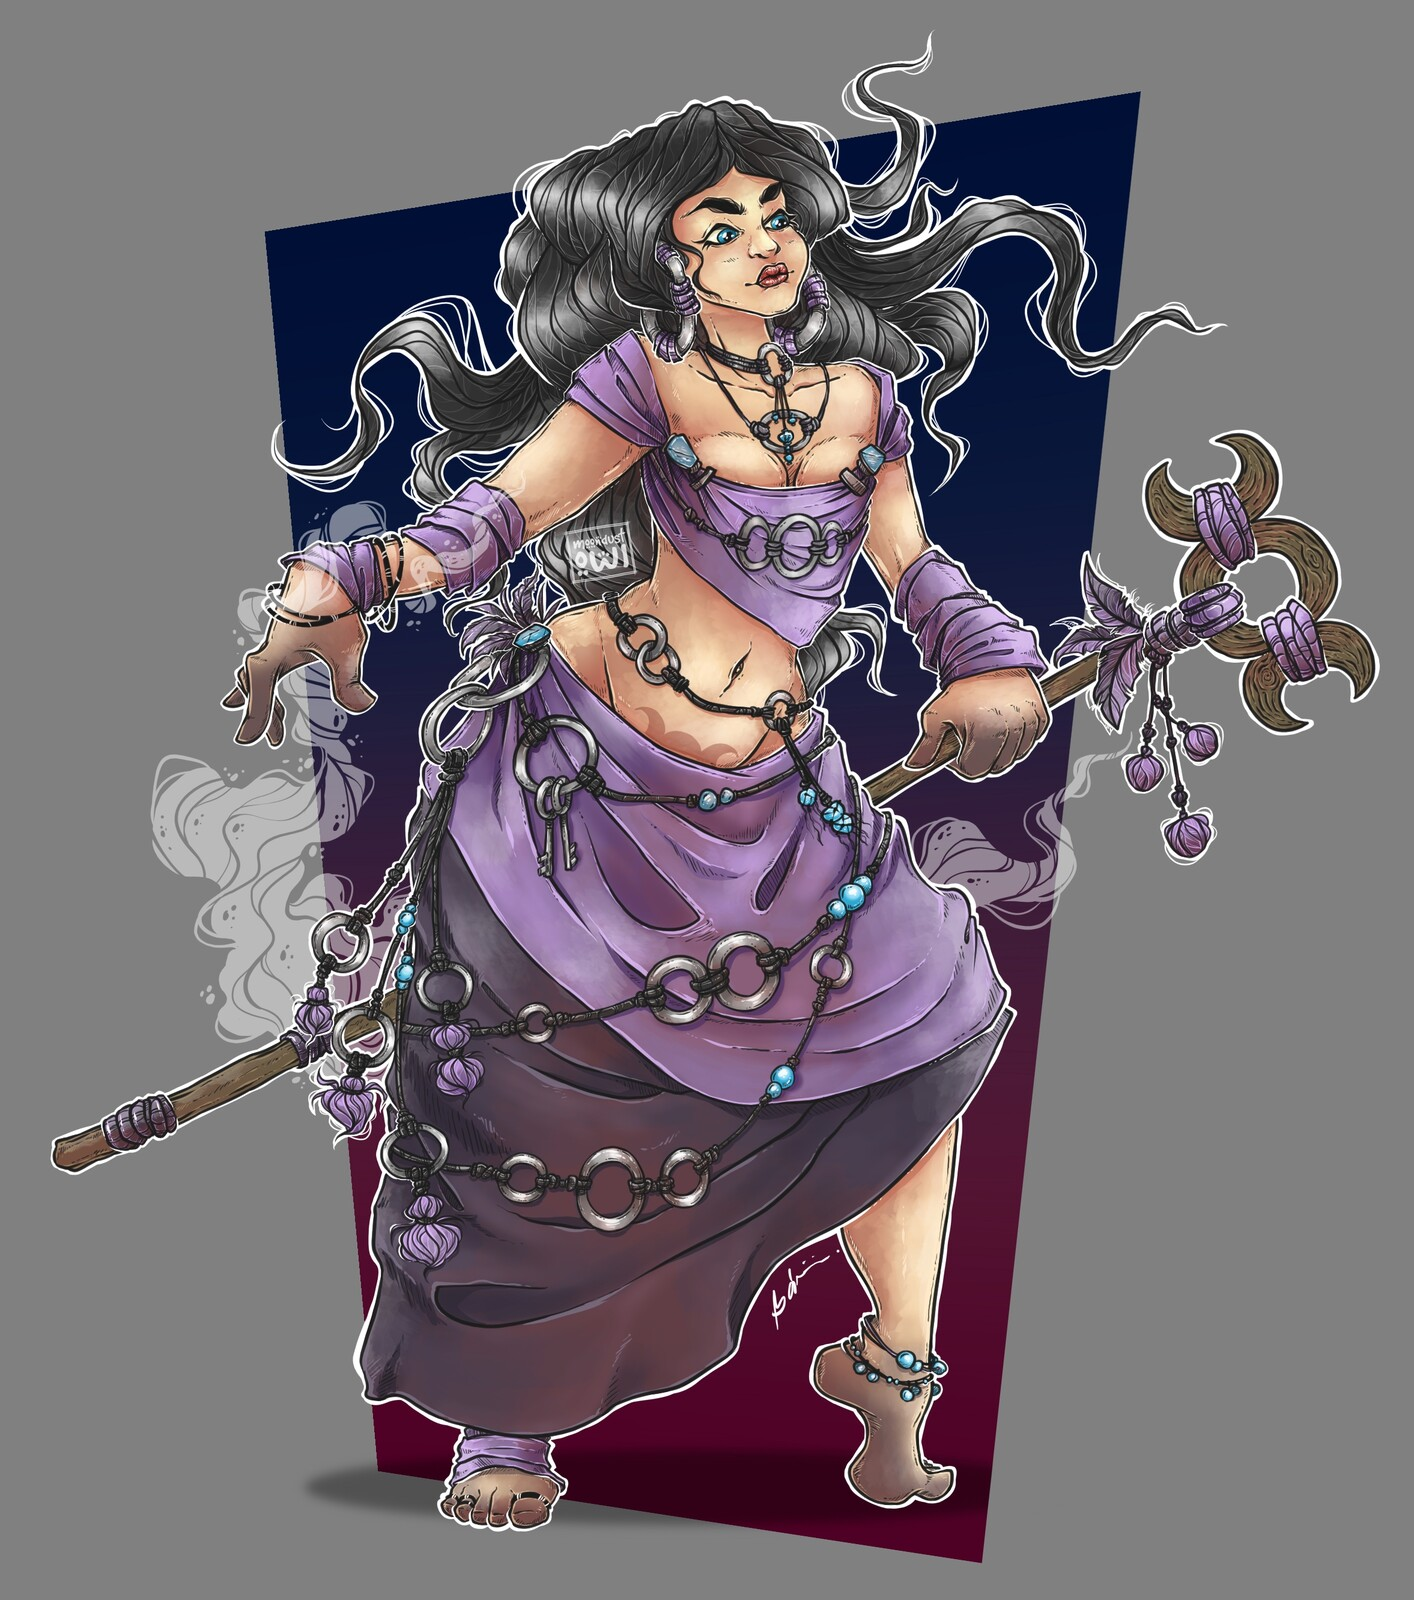 Finished character art